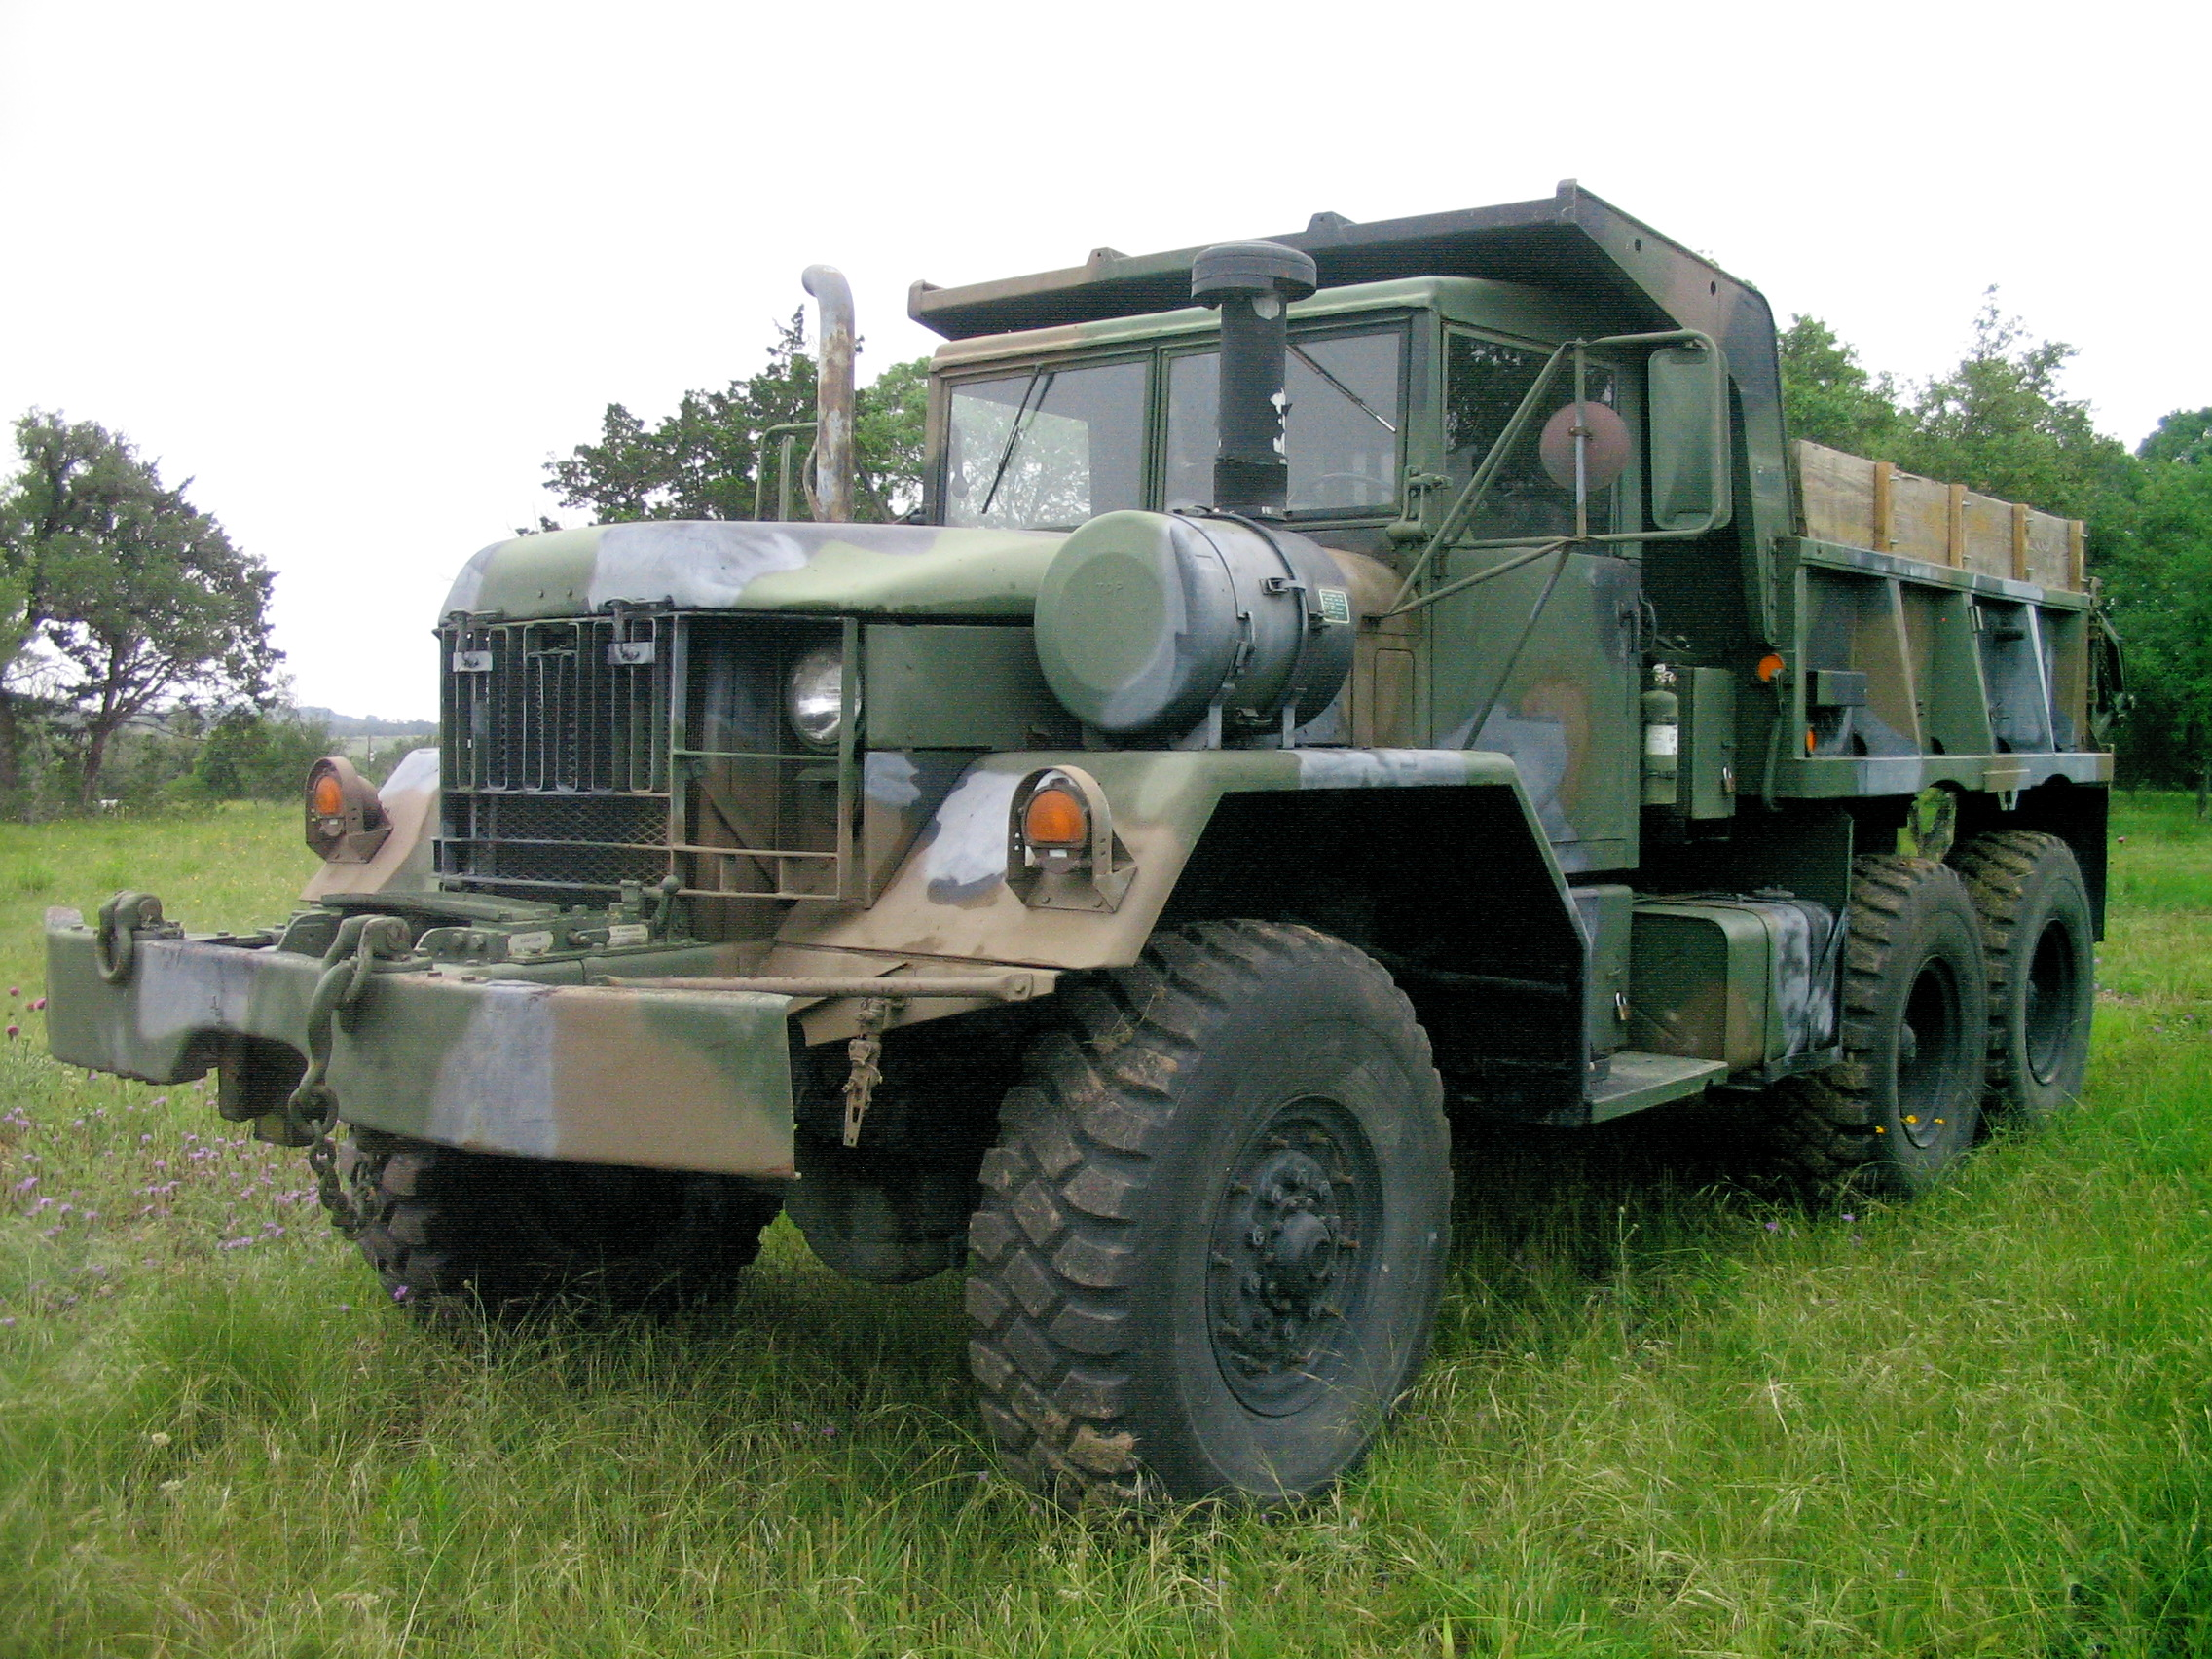 Military Truck For Sale >> Texas Military Trucks Military Vehicles For Sale Military Trucks